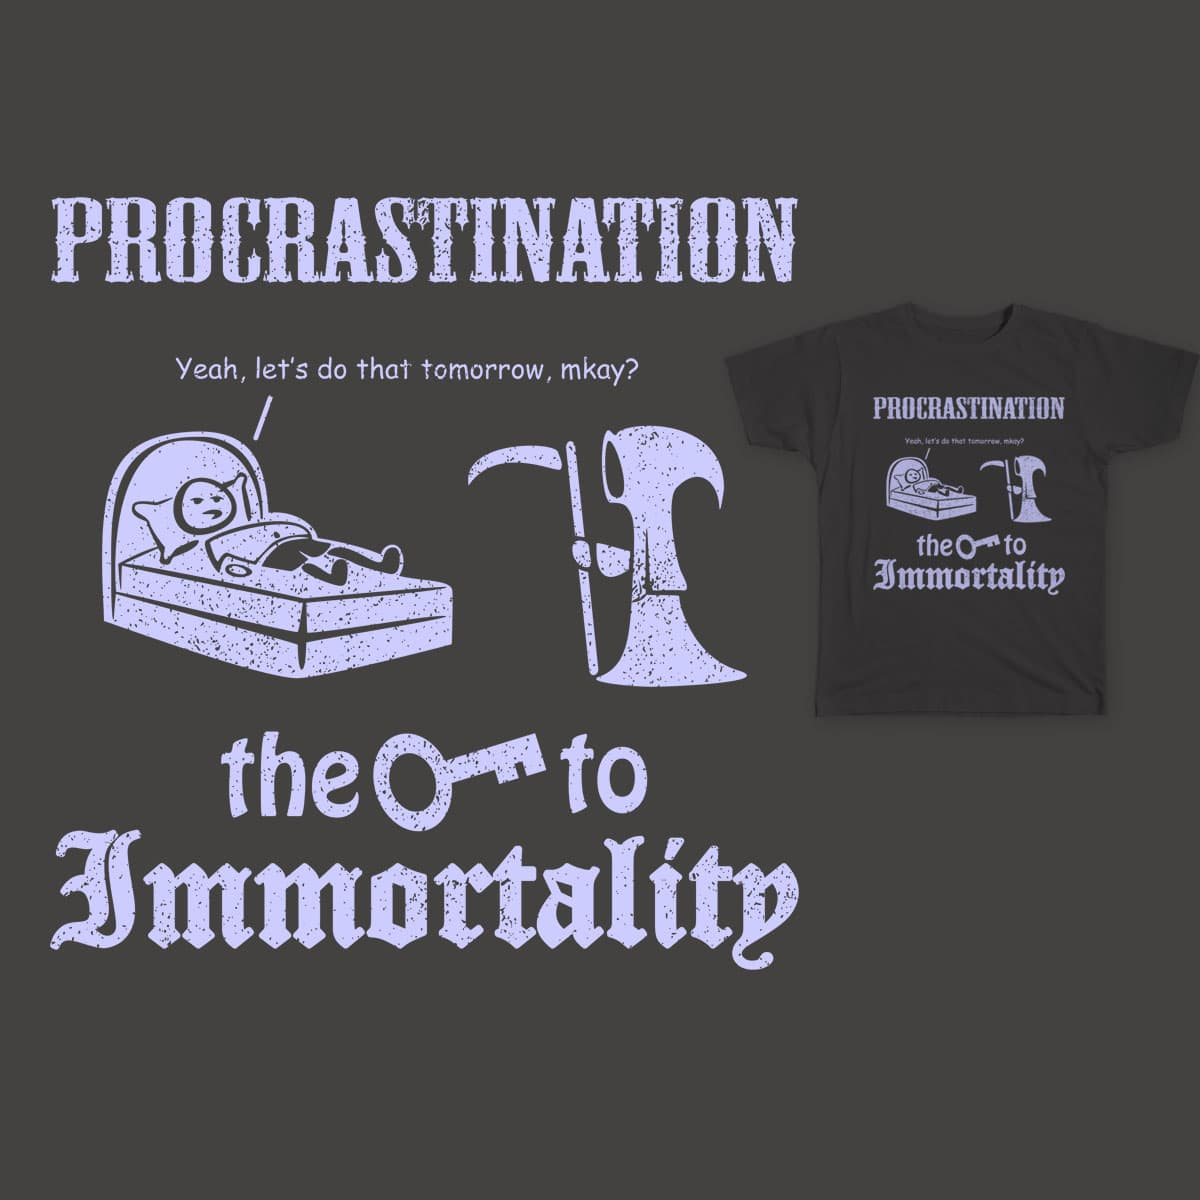 Procrastination: the key to immortality by mtbecnel on Threadless